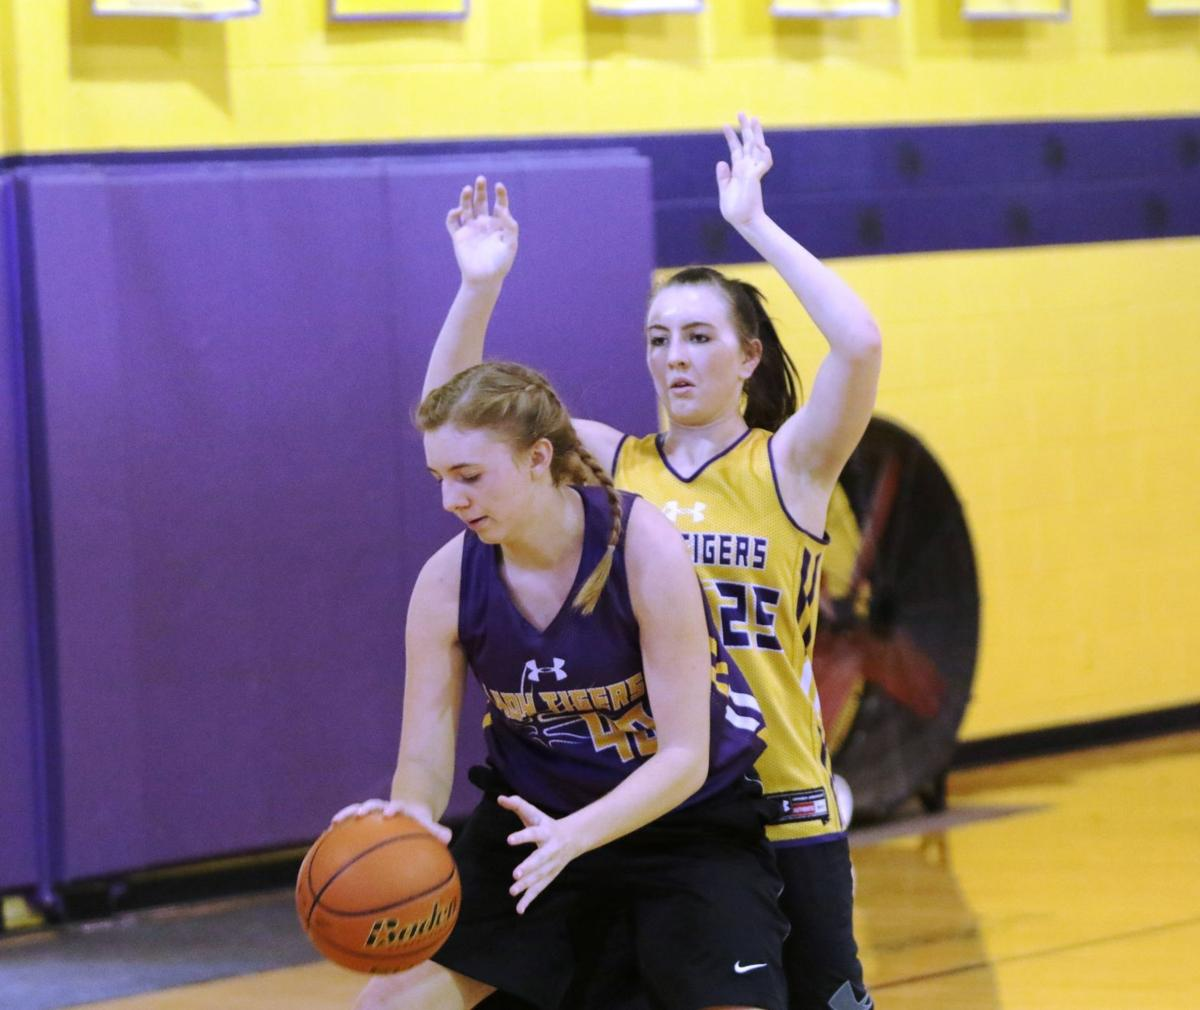 New Underwood girls earn first State berth since 2008 ...